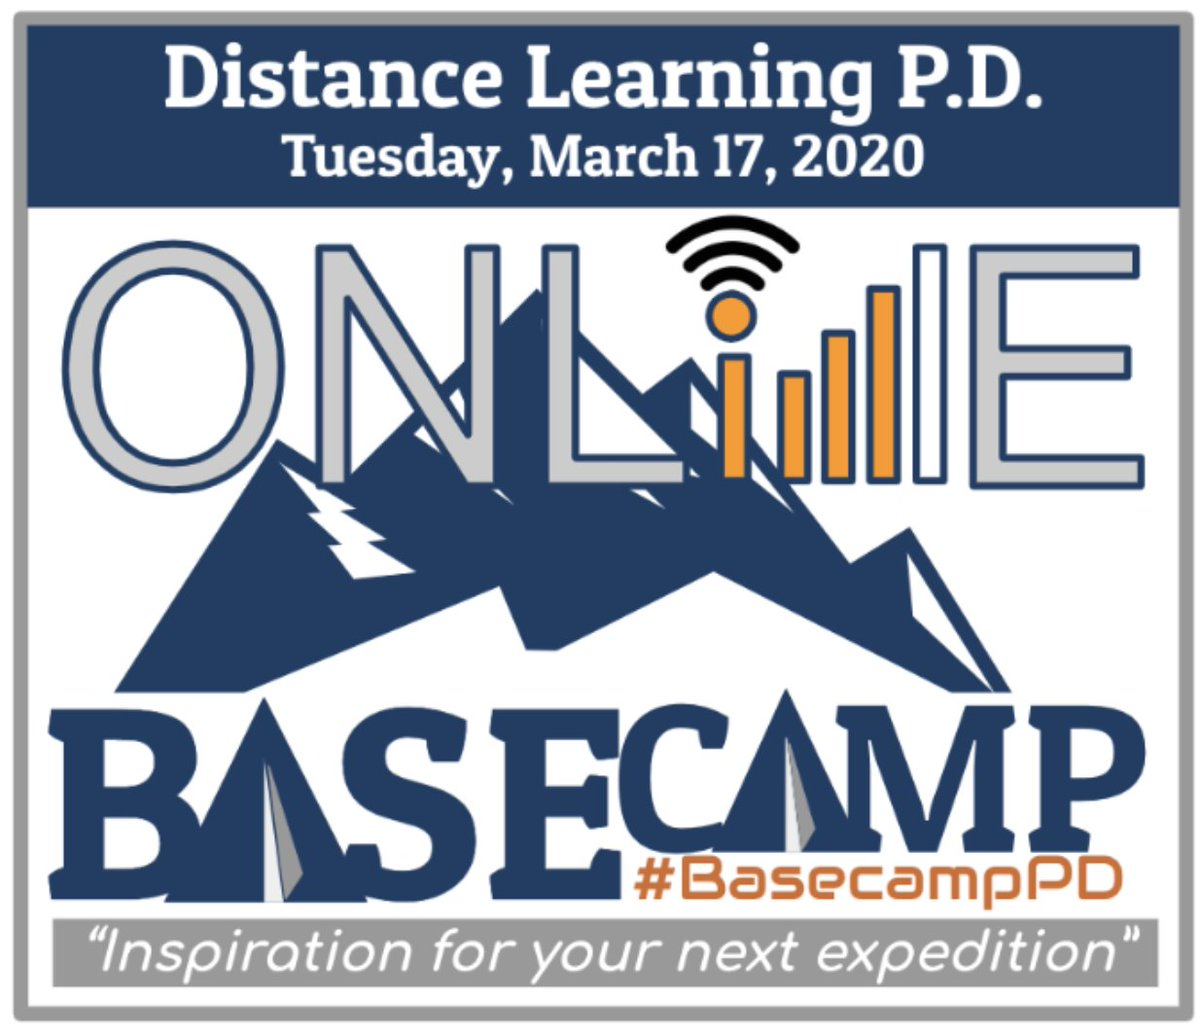 """Join us for #BasecampPD Online - Free & Open to all edus. 100% online & designed to support your transition to distance learning! """"By educators; for educators"""" Let's connect & get through this together! 3/17 Agenda: https://t.co/adKFx7U1gw Register Here: https://t.co/URUezVBxtl https://t.co/3FUcZV08PH"""